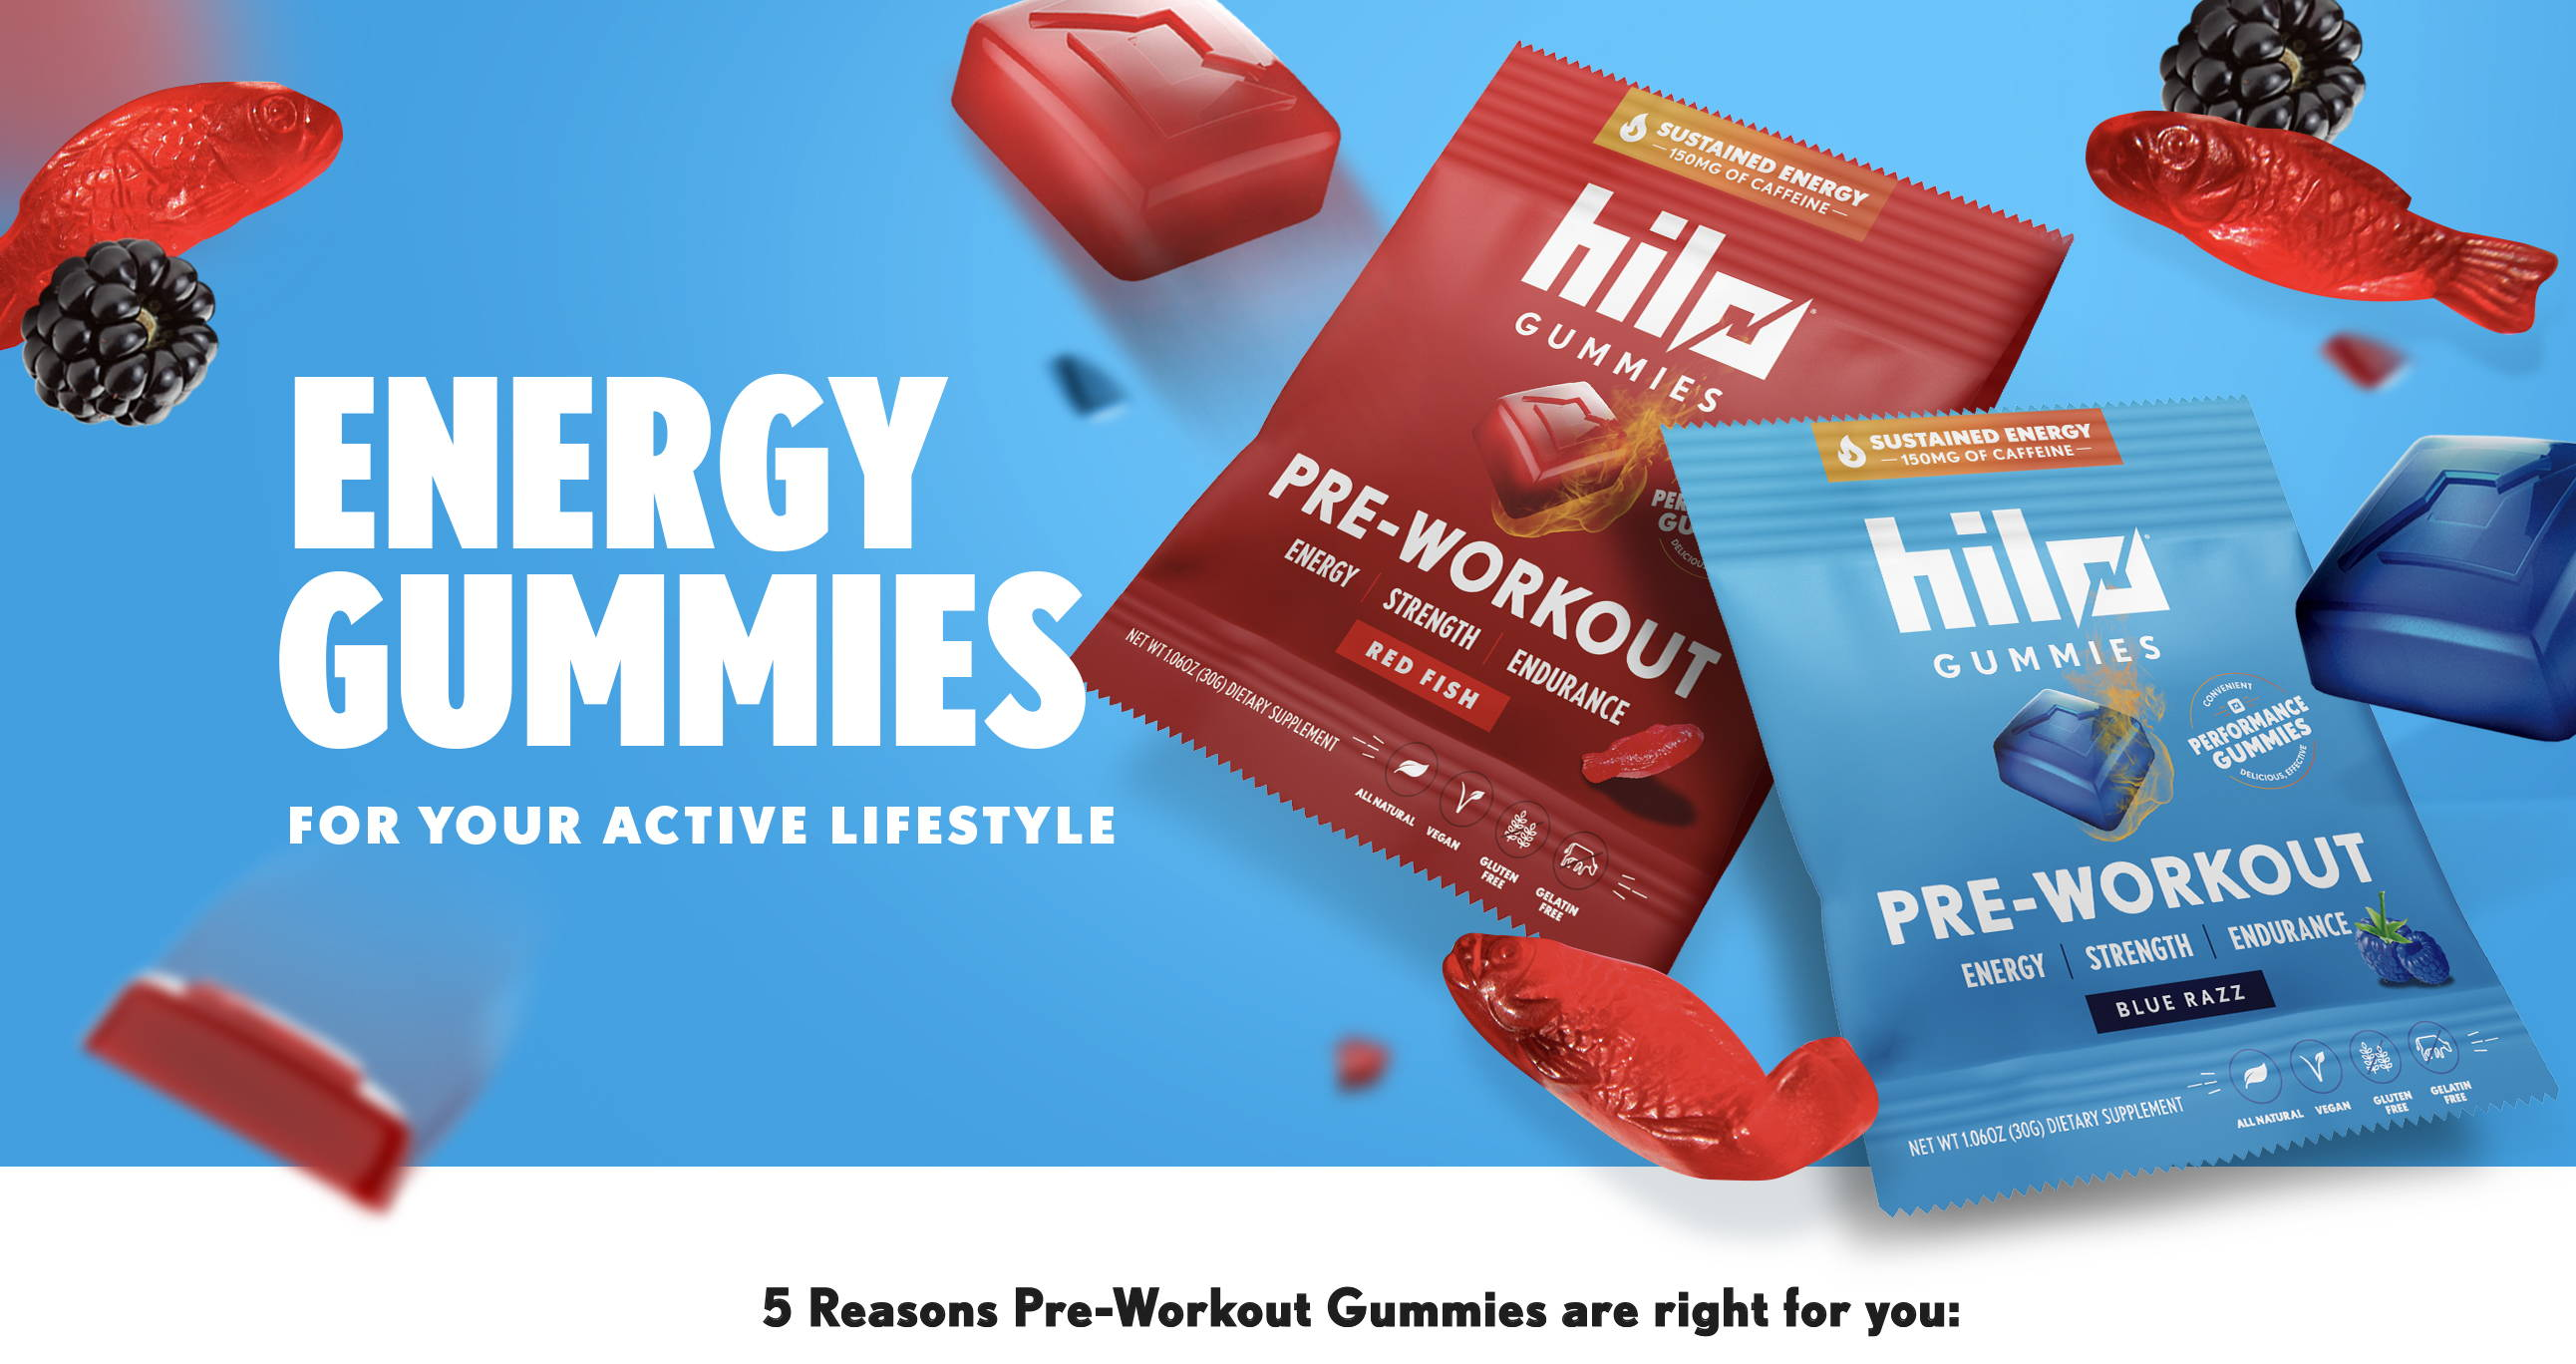 Energy Gummies for Your Active Lifestyle